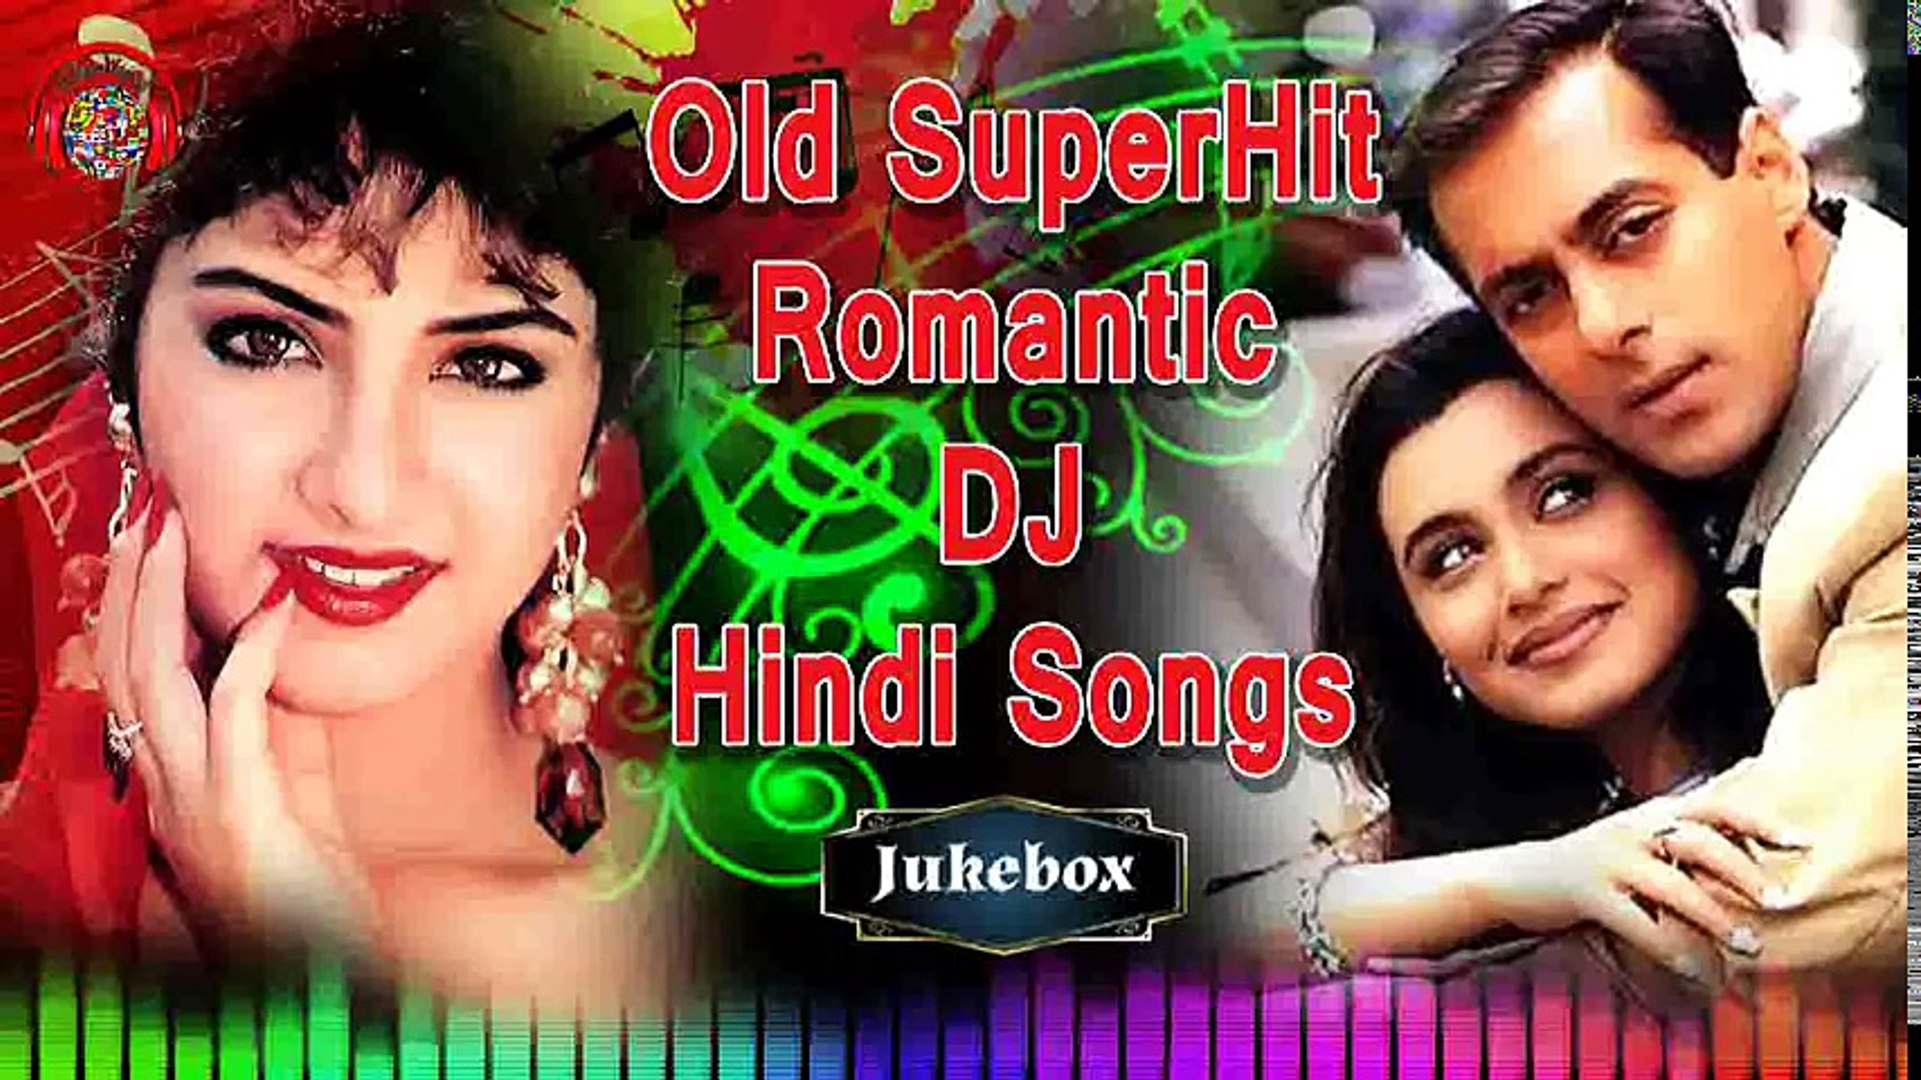 Old Romantic Dj Hindi Songs Jukebox Ii 480 X 854 Video Dailymotion So much so that the movie received an award from the british film institute in 2004 for its heartwarming songs. old romantic dj hindi songs jukebox ii 480 x 854